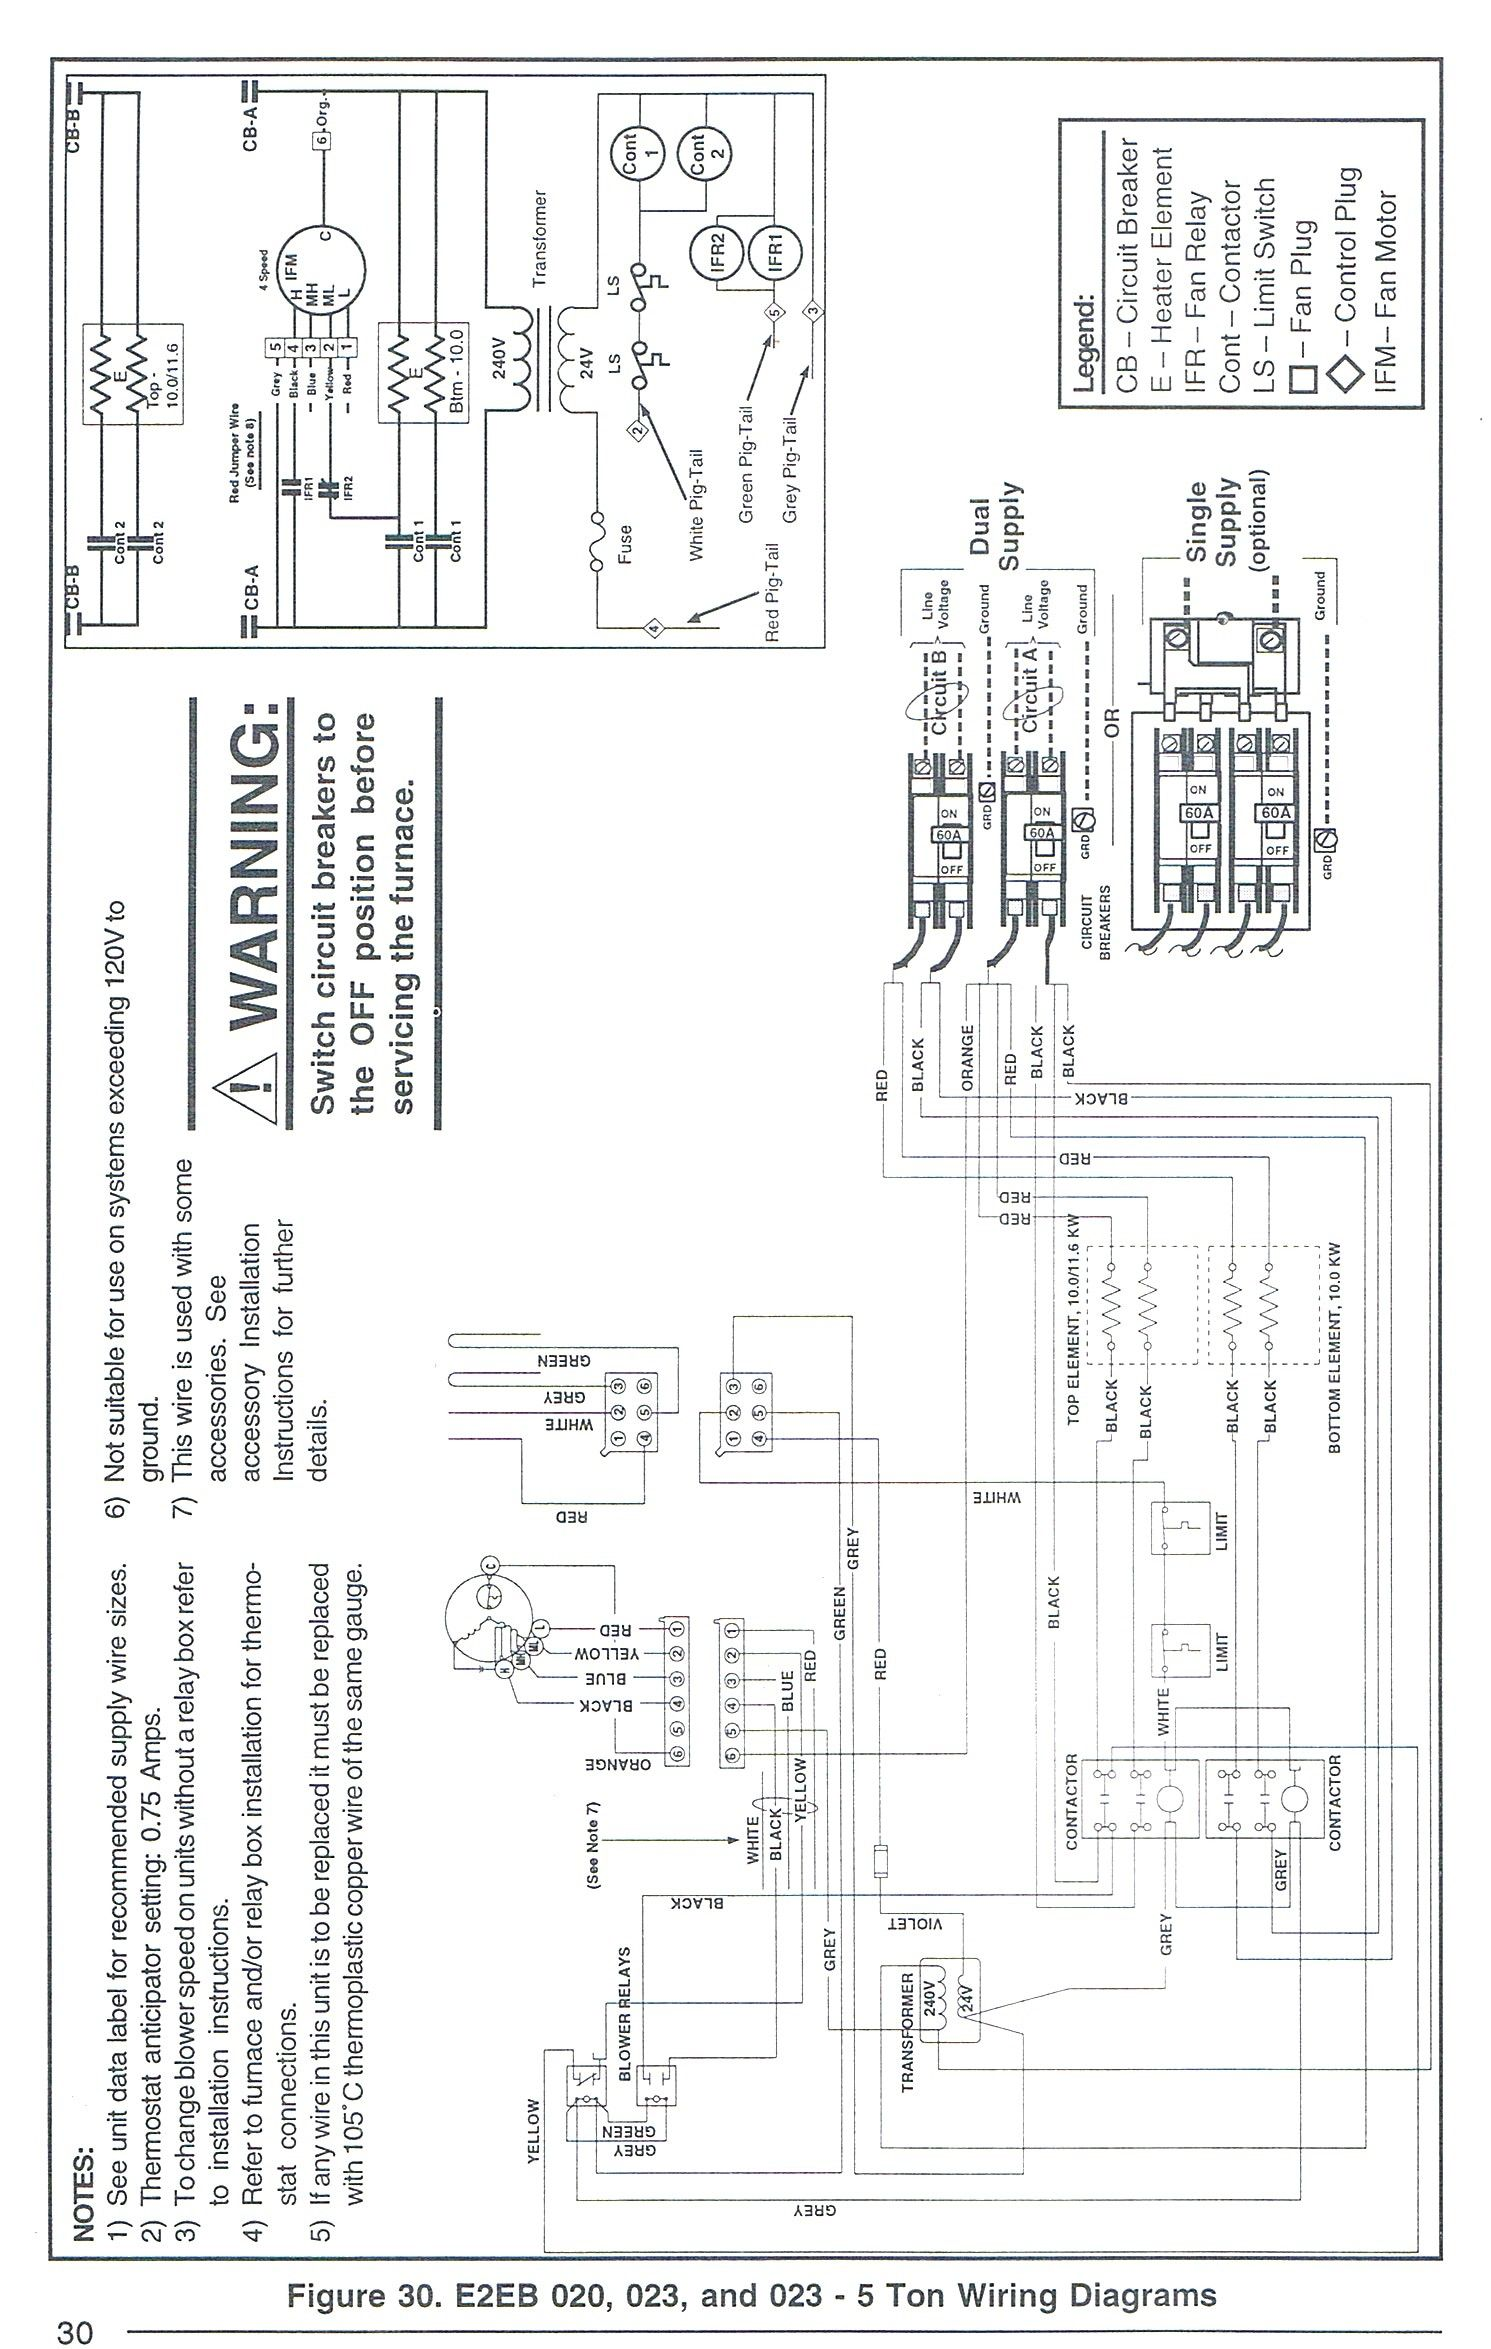 Unique Westinghouse Electric Furnace Wiring Diagram Diagram Diagramsample Diagramtemplate Wiringdiagram Electric Furnace Gas Furnace Westinghouse Electric